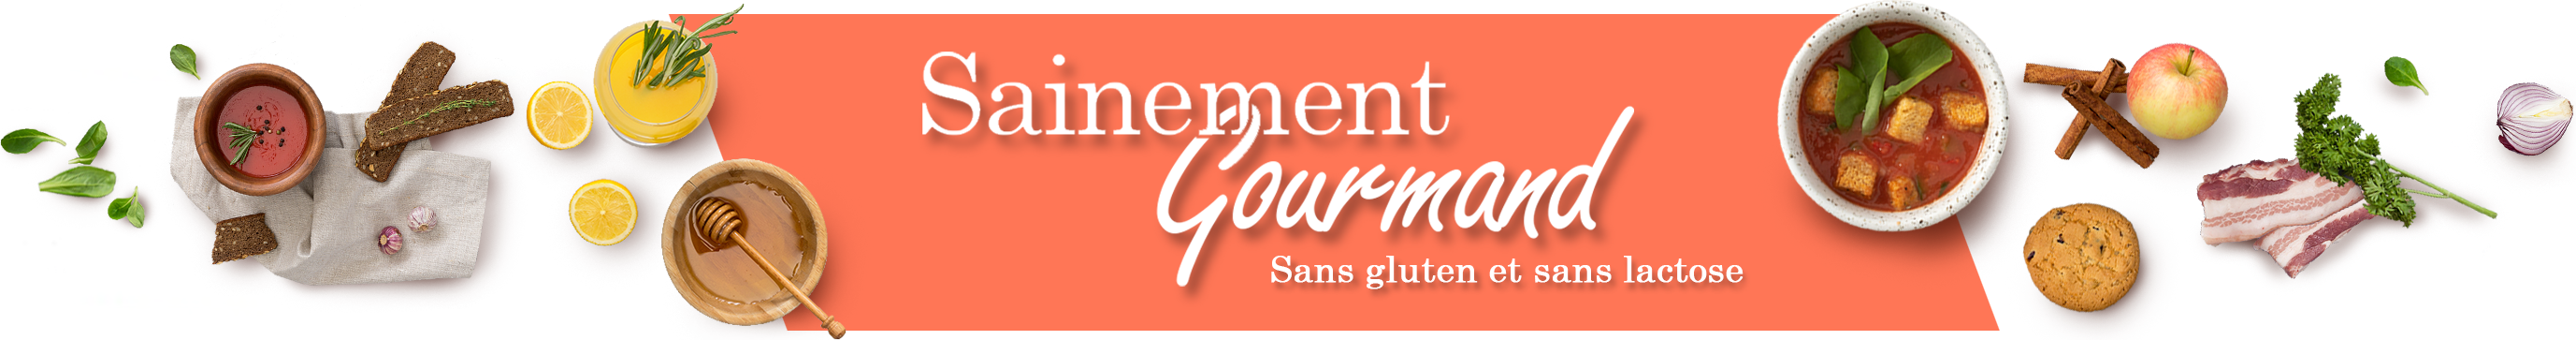 Sainement gourmand